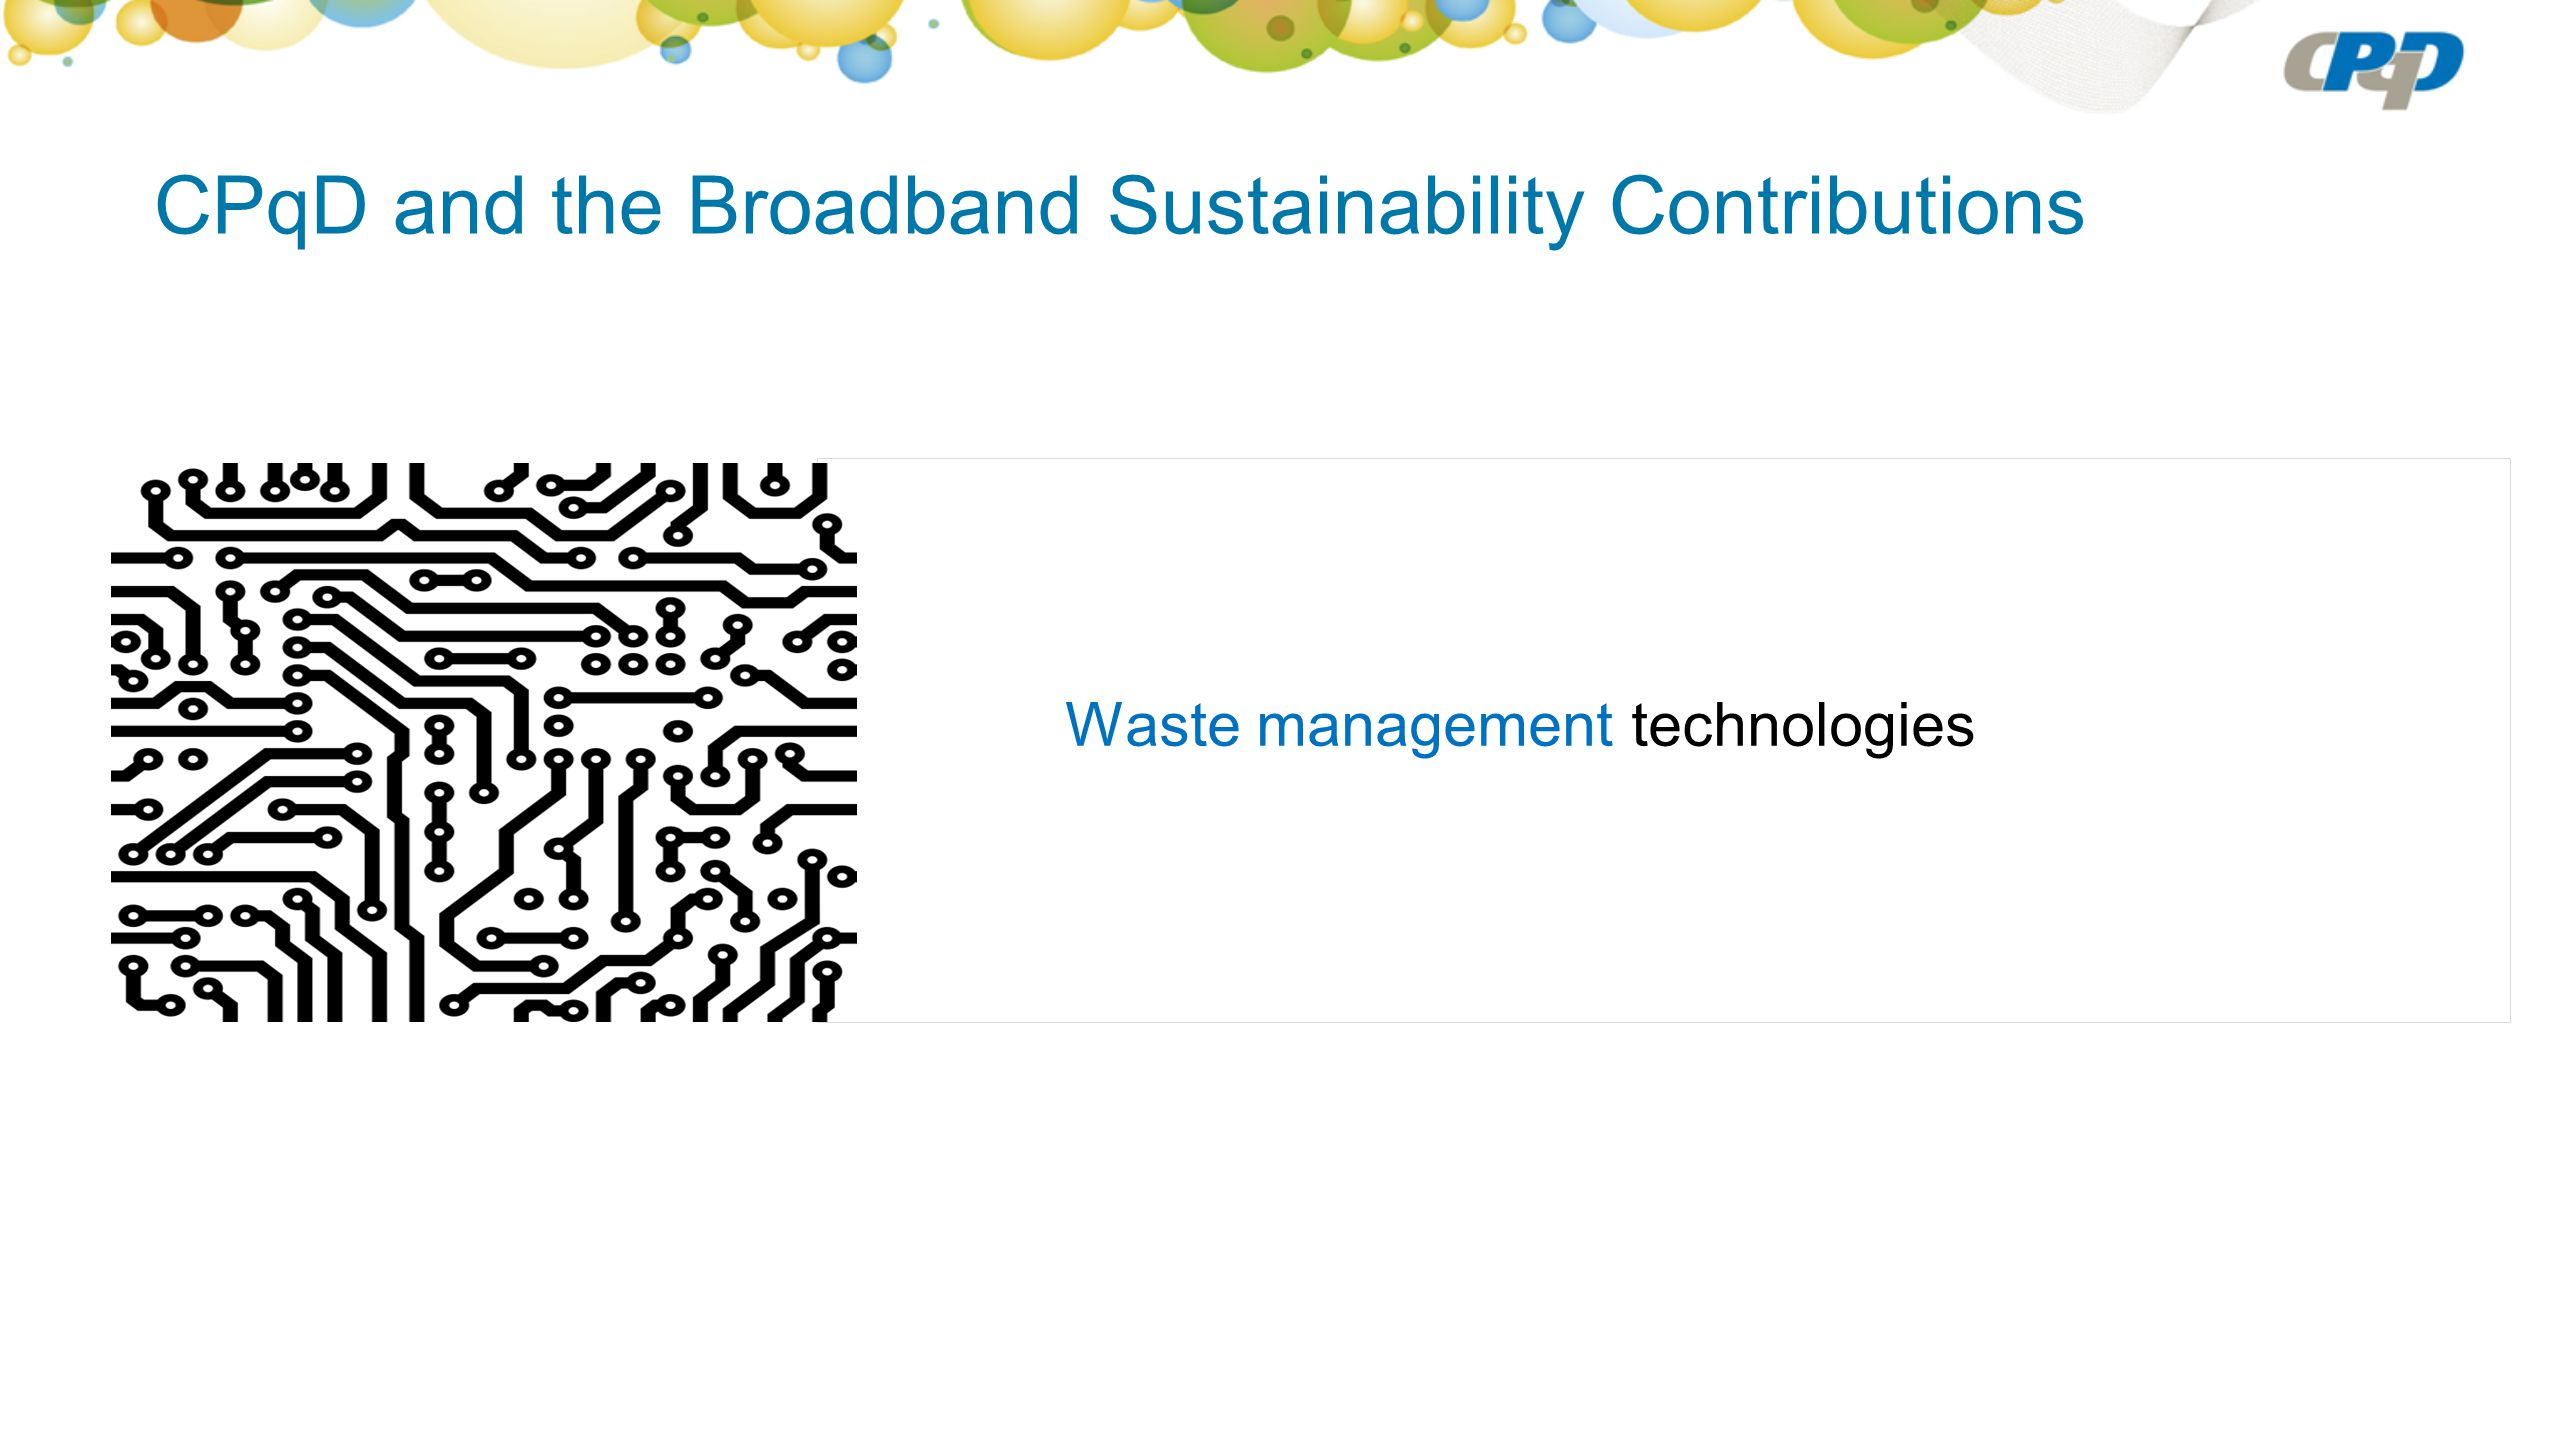 CPqD and the Broadband Sustainability Contributions Waste management technologies